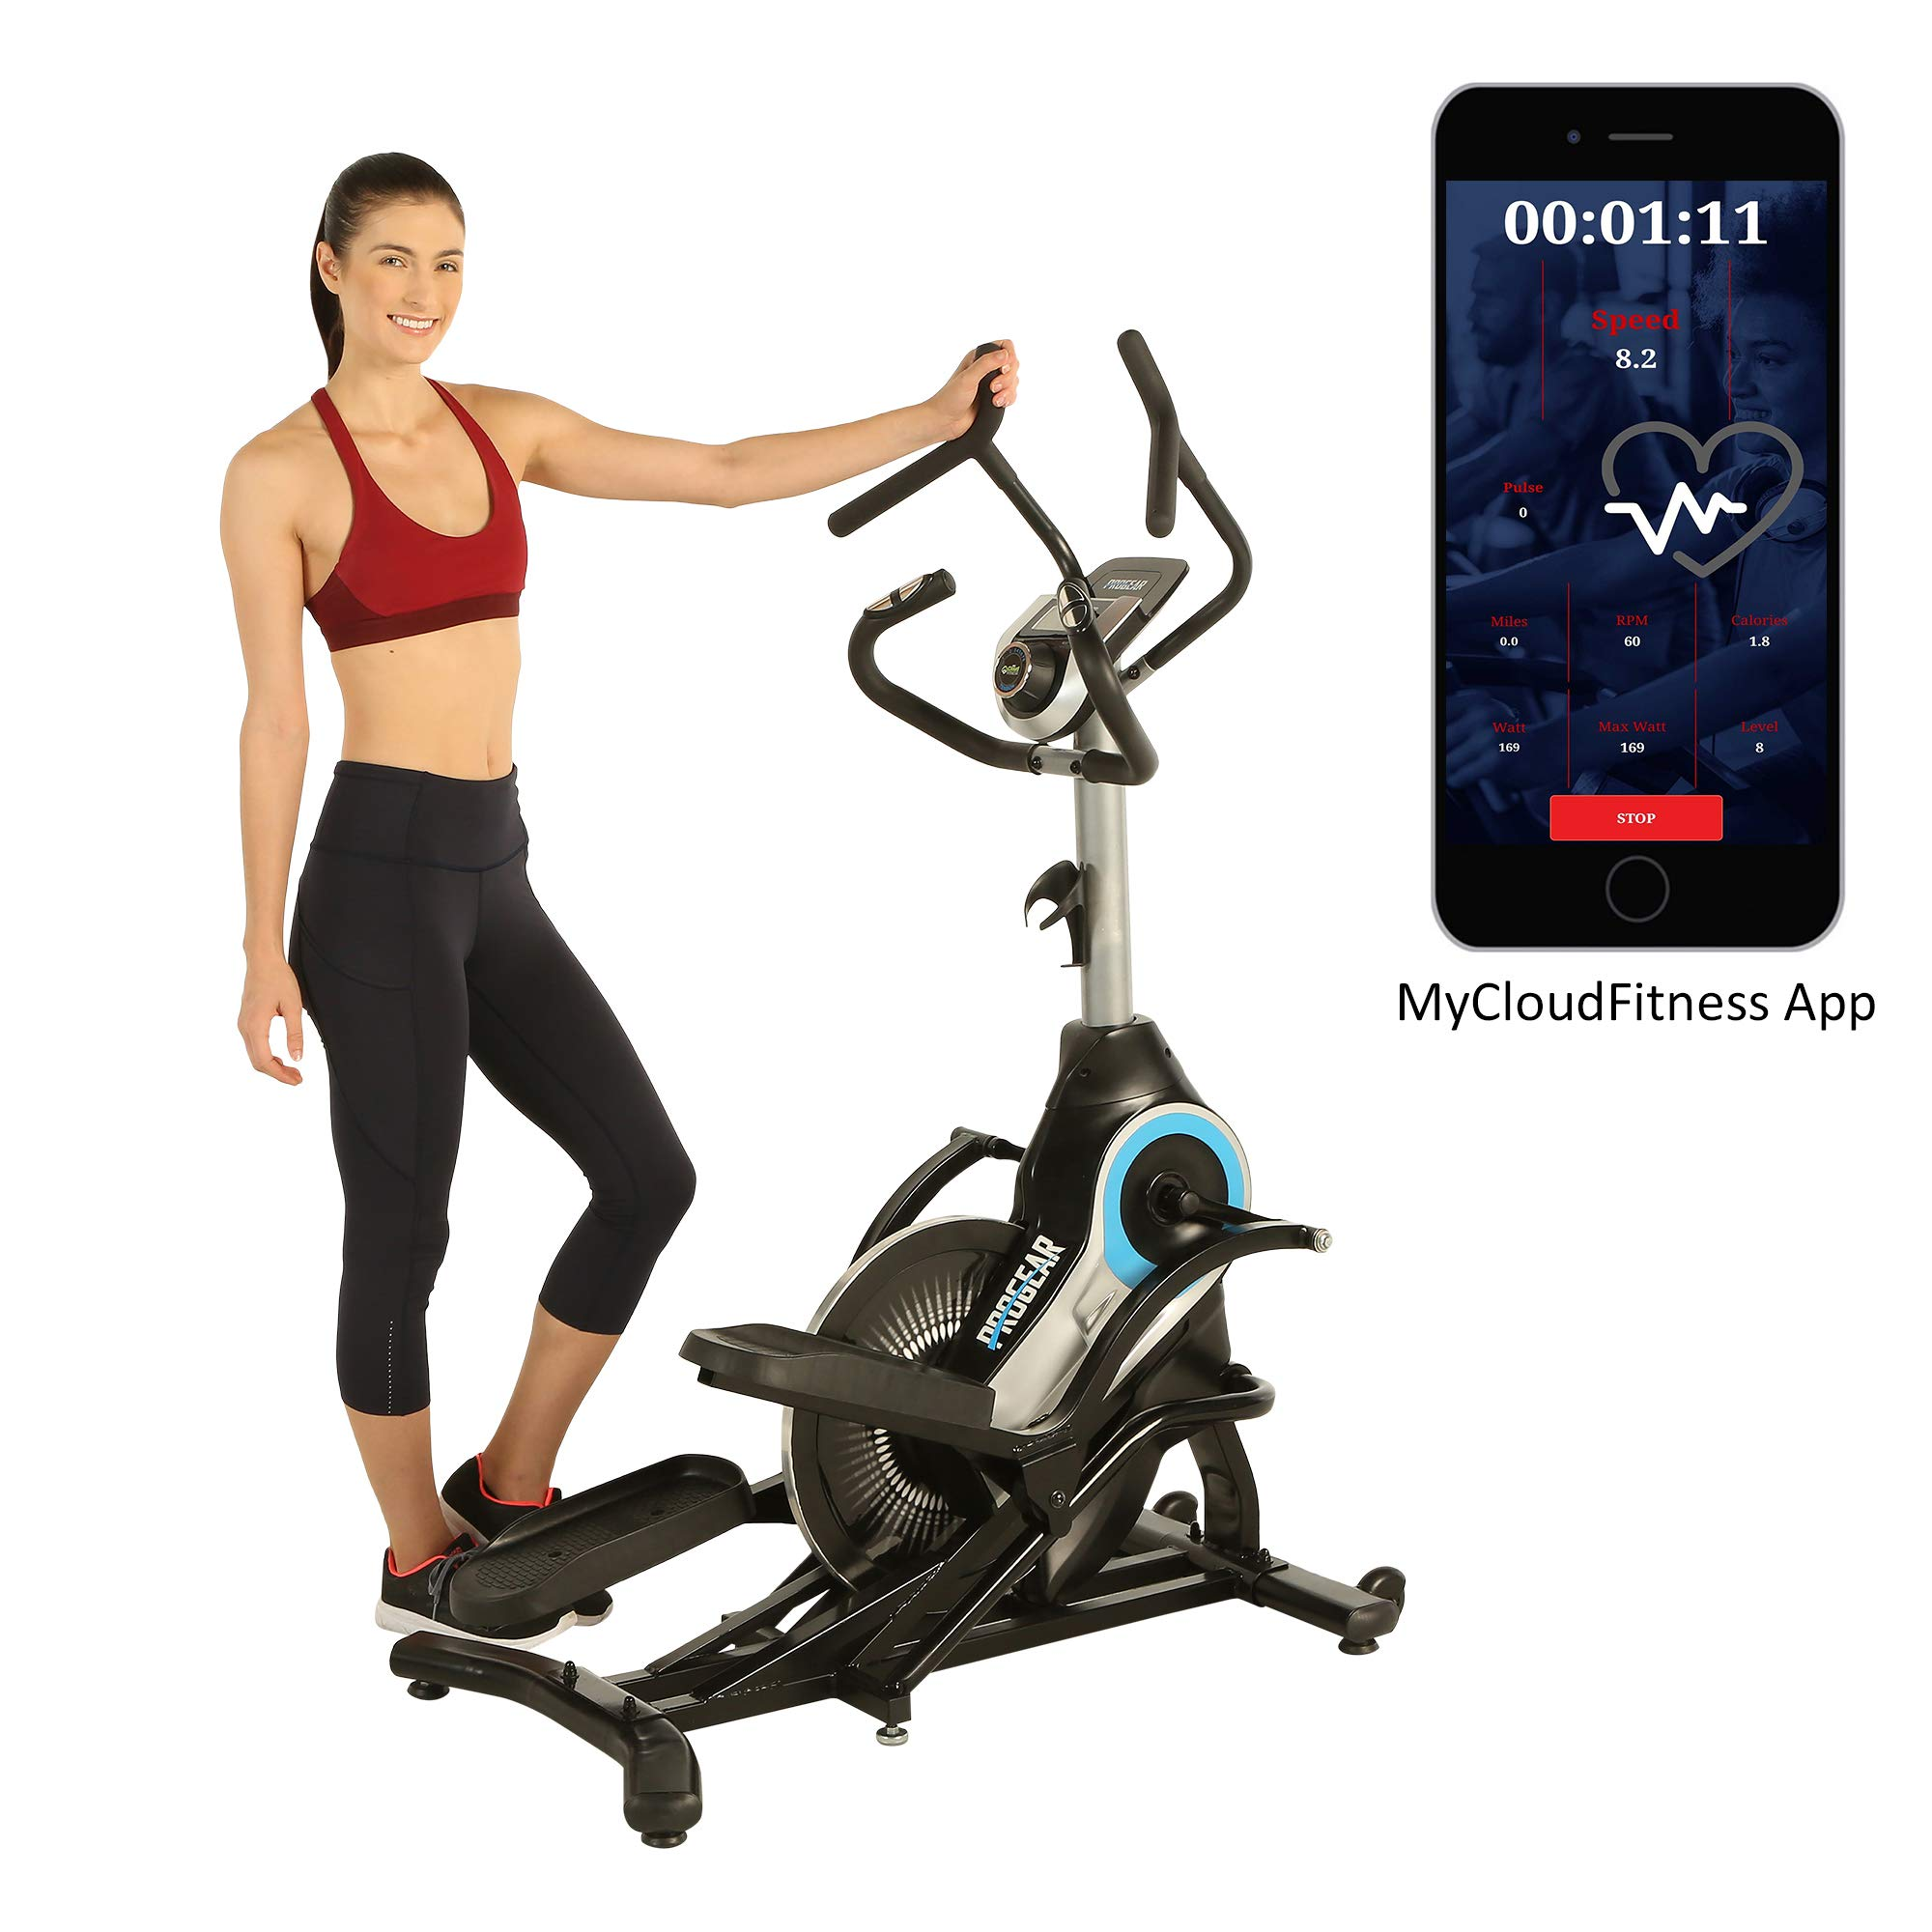 ProGear 9900 HIIT Bluetooth Smart Cloud Fitness Crossover Stepper/Elliptical Trainer with Goal Setting and Free App